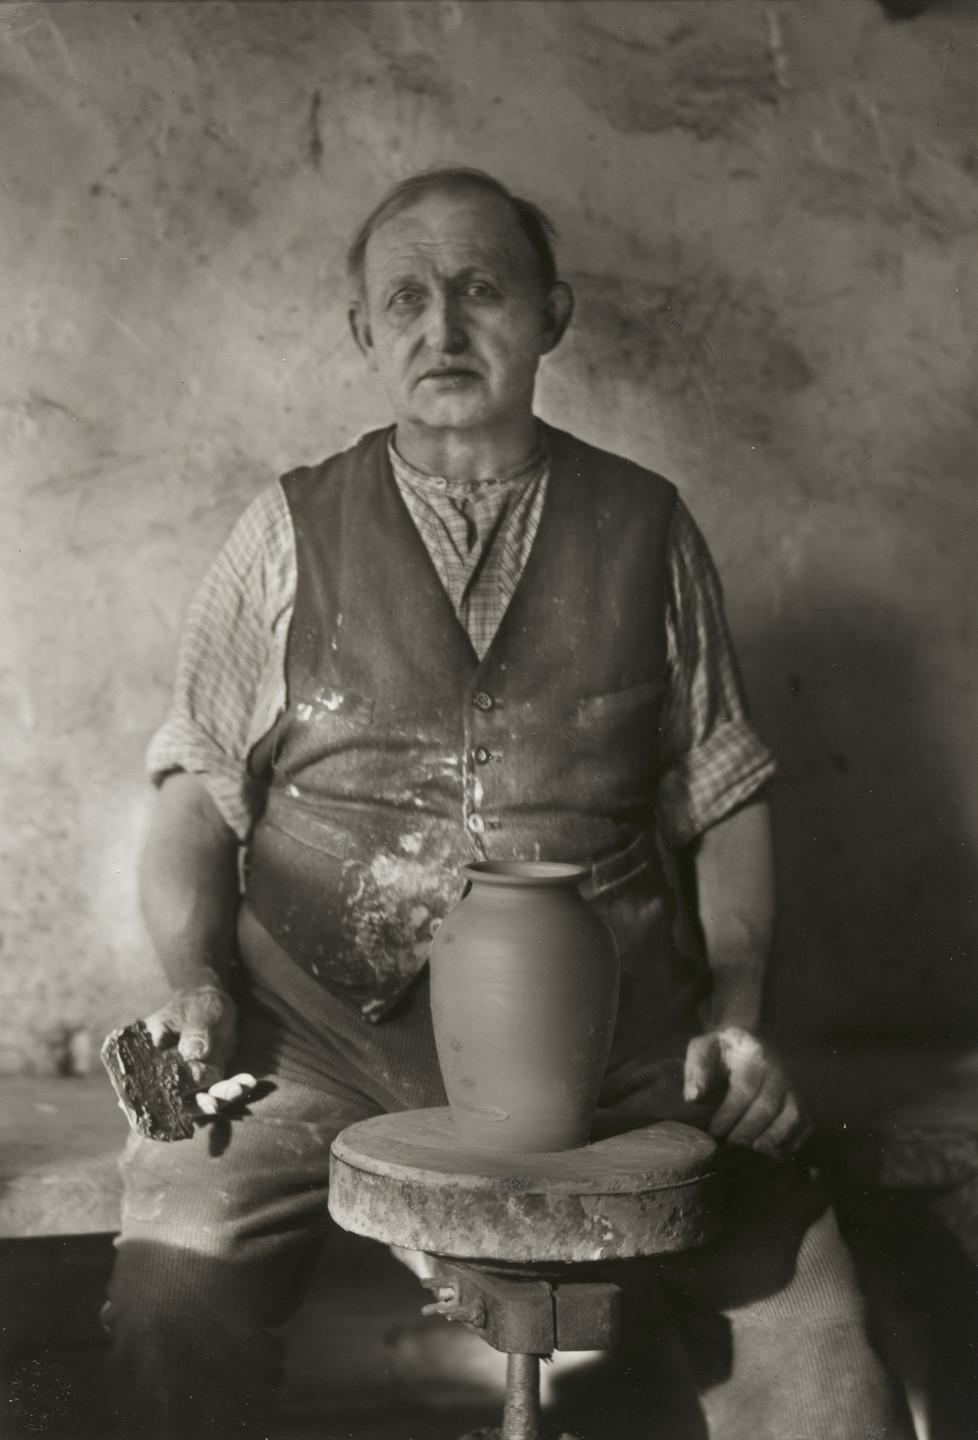 August Sander. Master Potter from Frechen. 1934